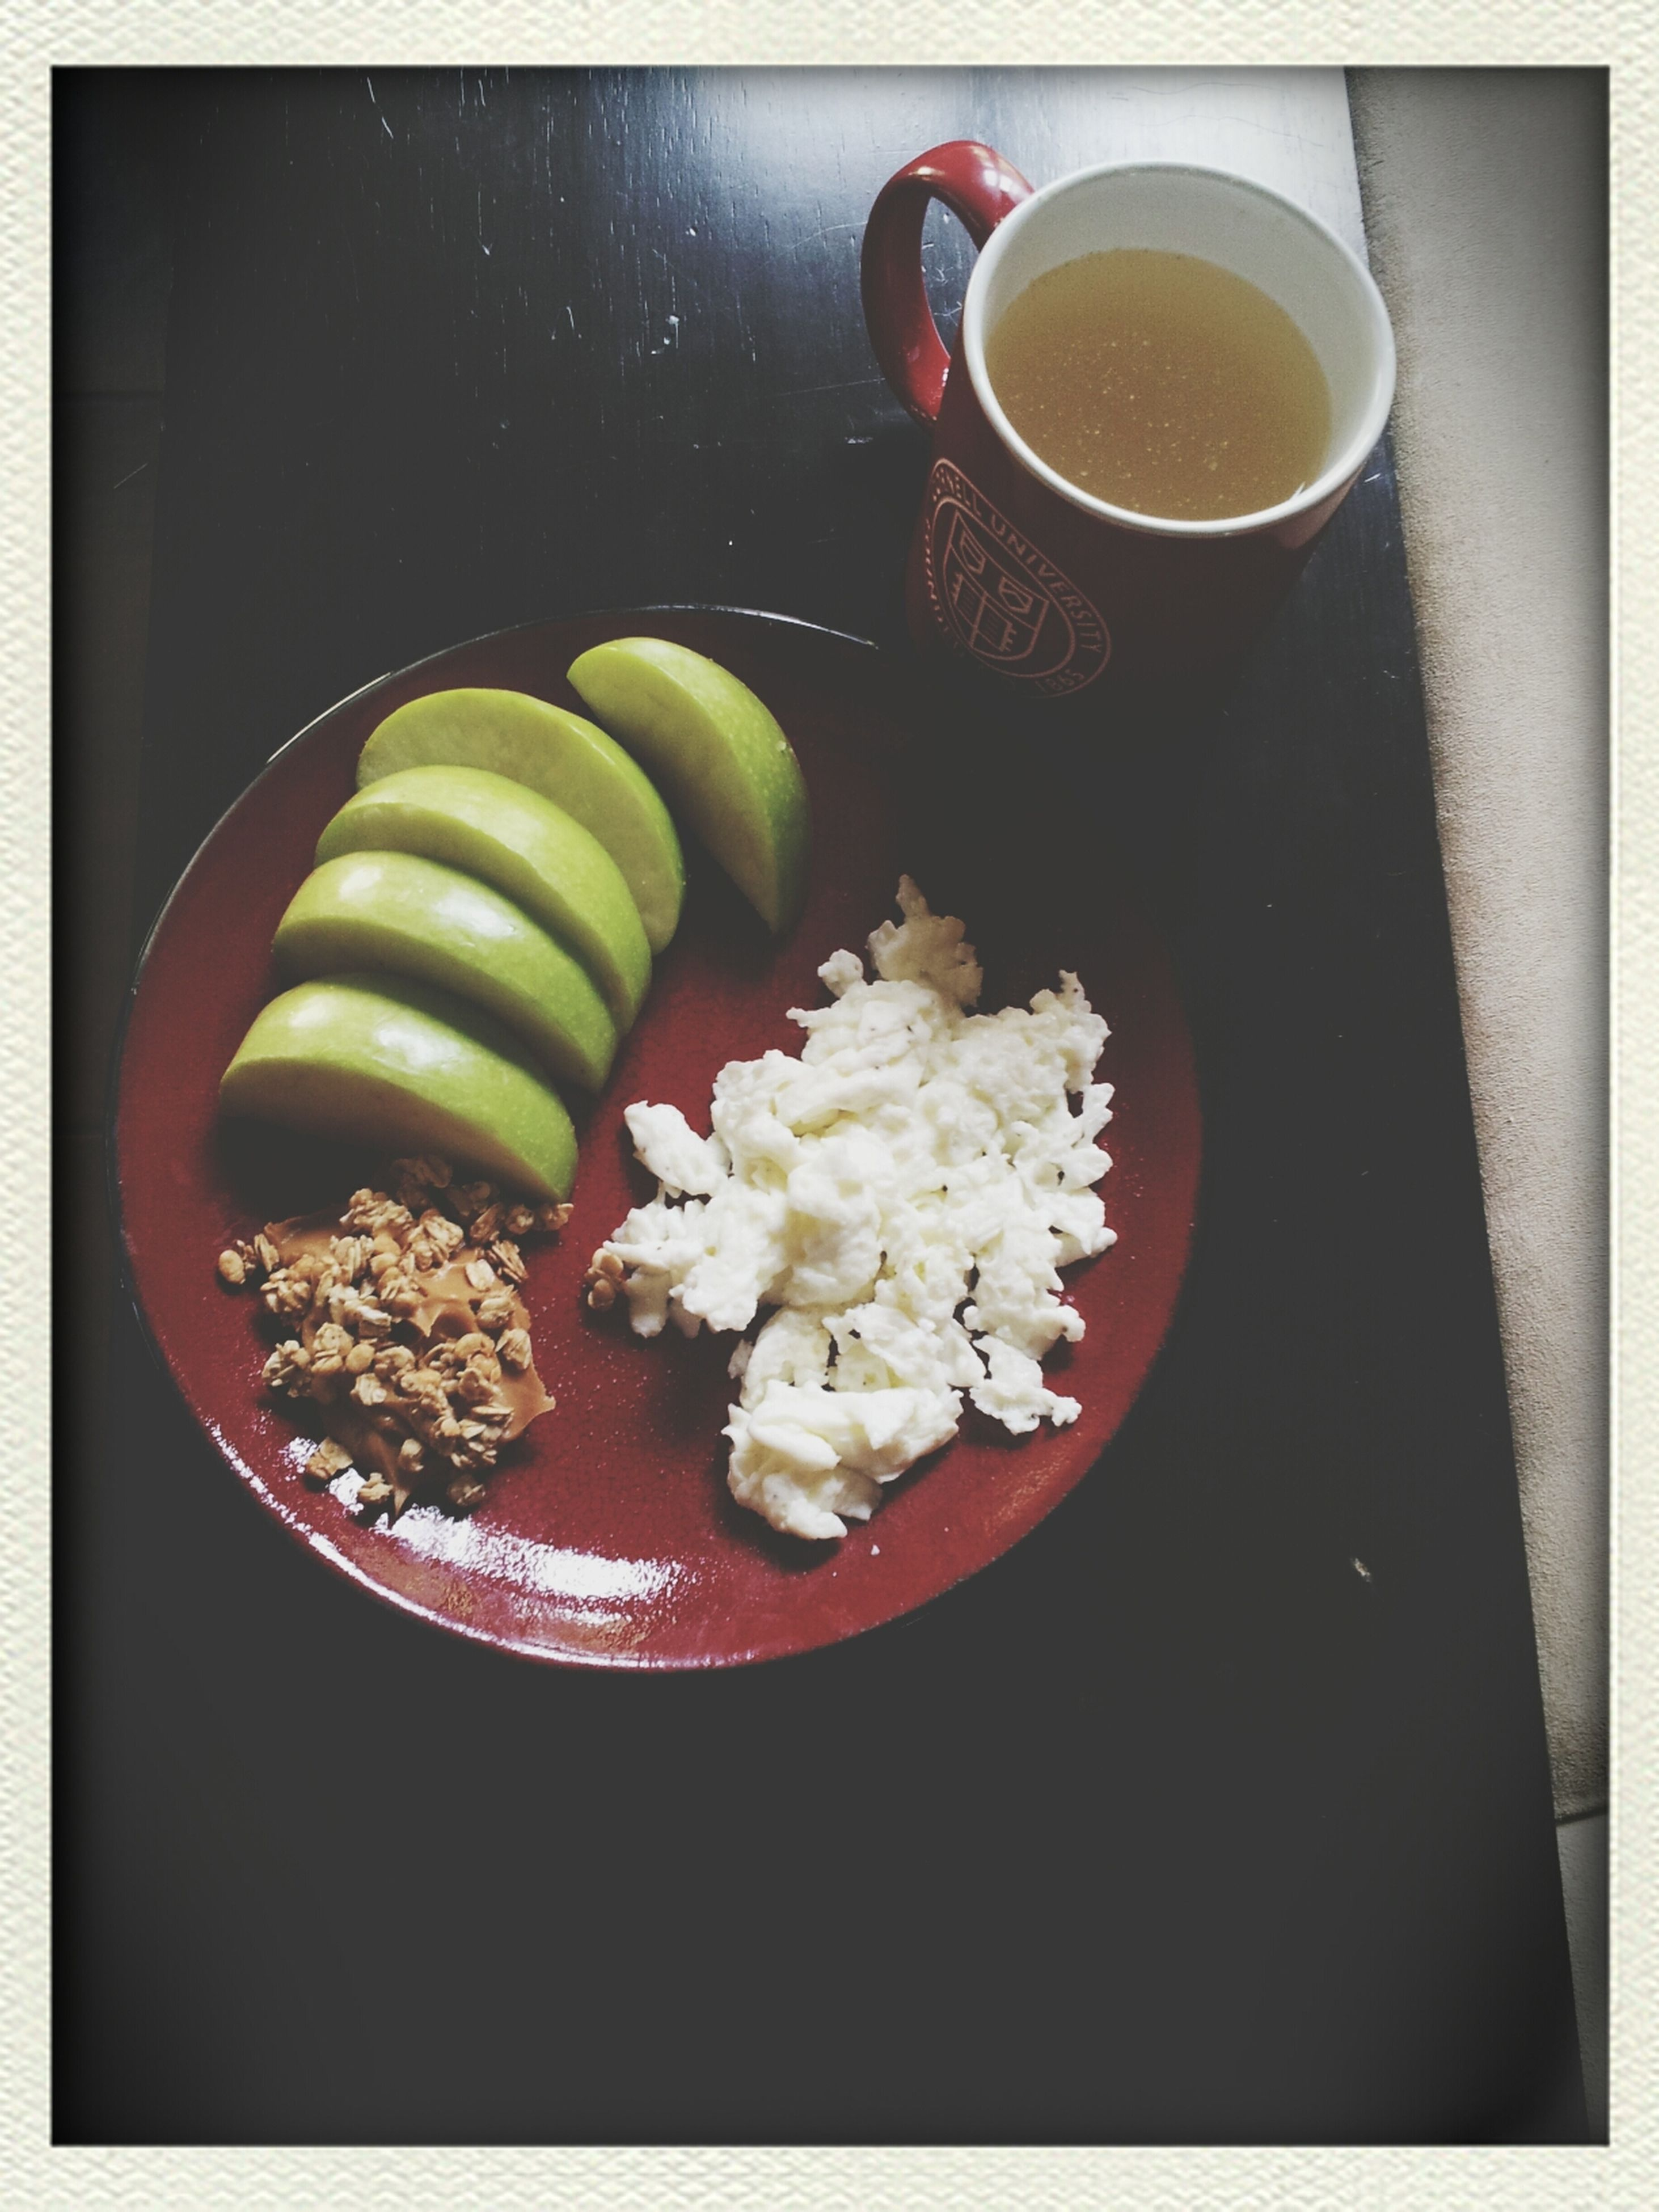 food and drink, freshness, food, indoors, table, still life, healthy eating, transfer print, plate, ready-to-eat, high angle view, drink, bowl, refreshment, auto post production filter, close-up, serving size, breakfast, meal, spoon